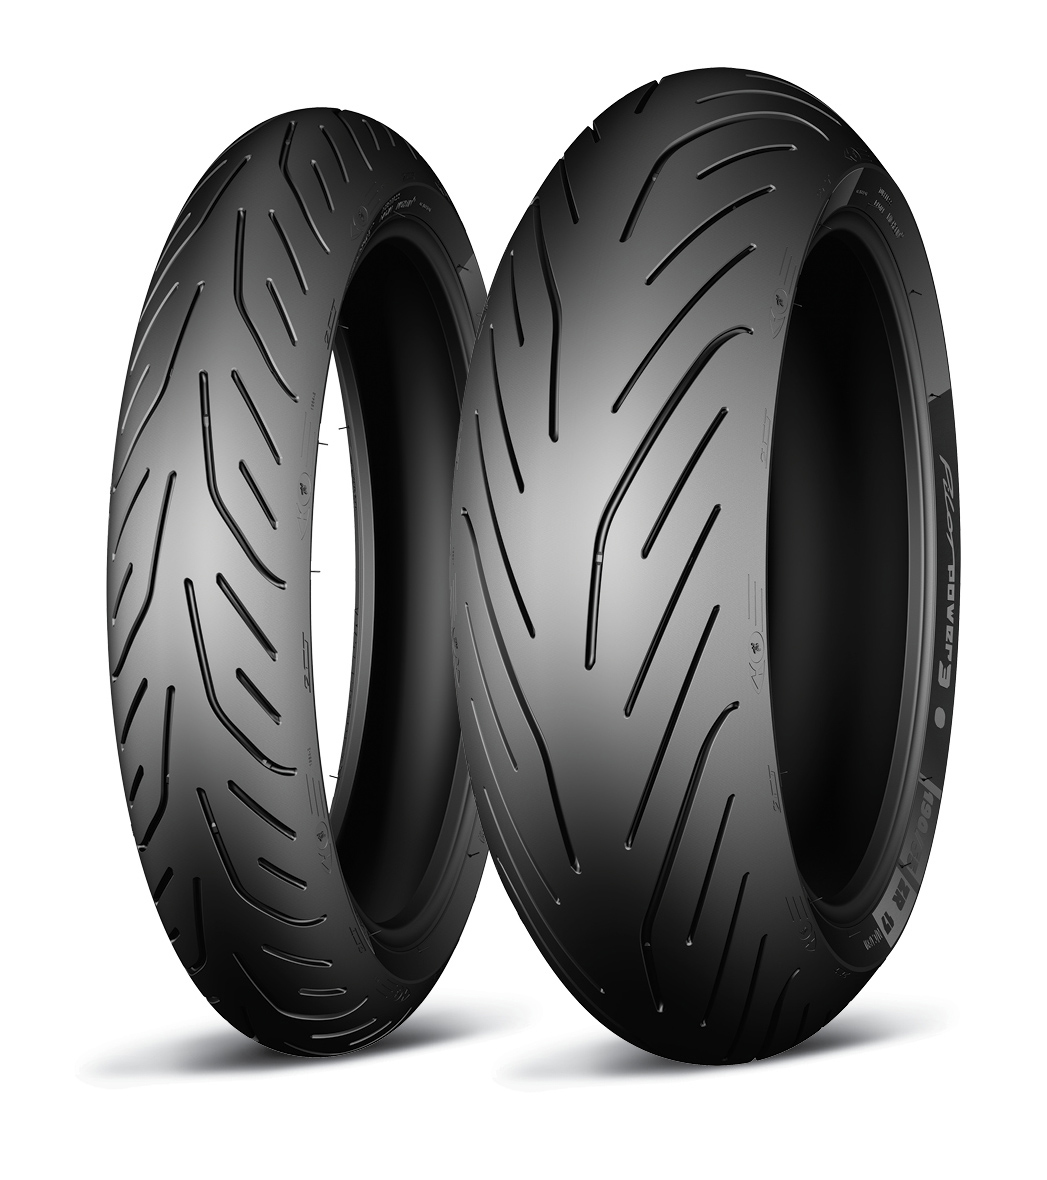 Моторезина Michelin Pilot Power 3 190/55 R17 75W купить в Киеве, цена — ShinaDiski